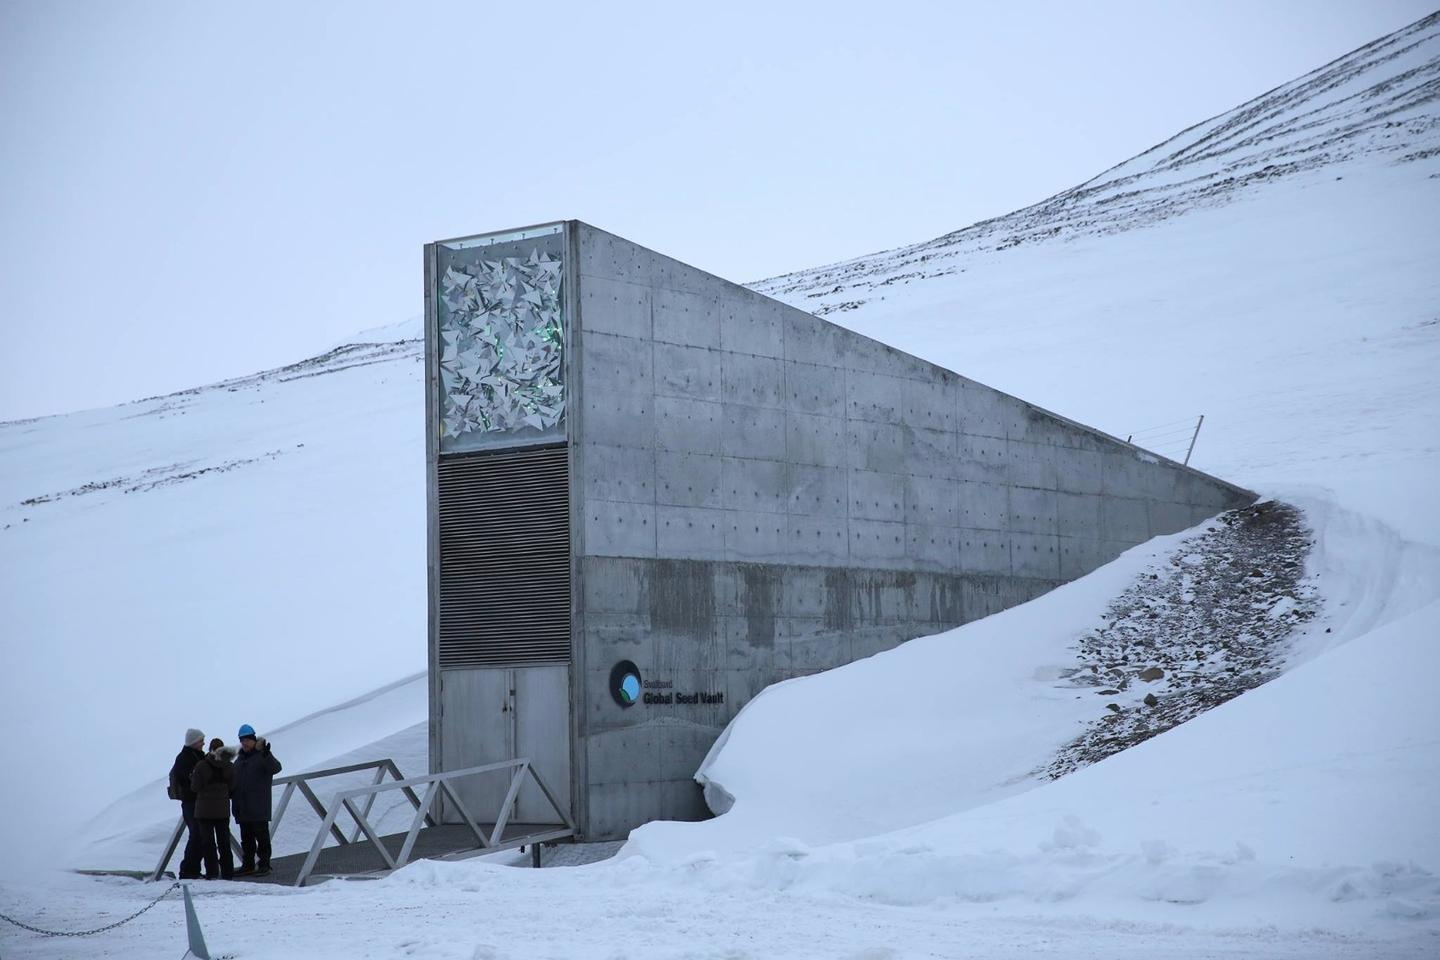 The Svalbard Global Seed Vault is home to the world's largest seed collection